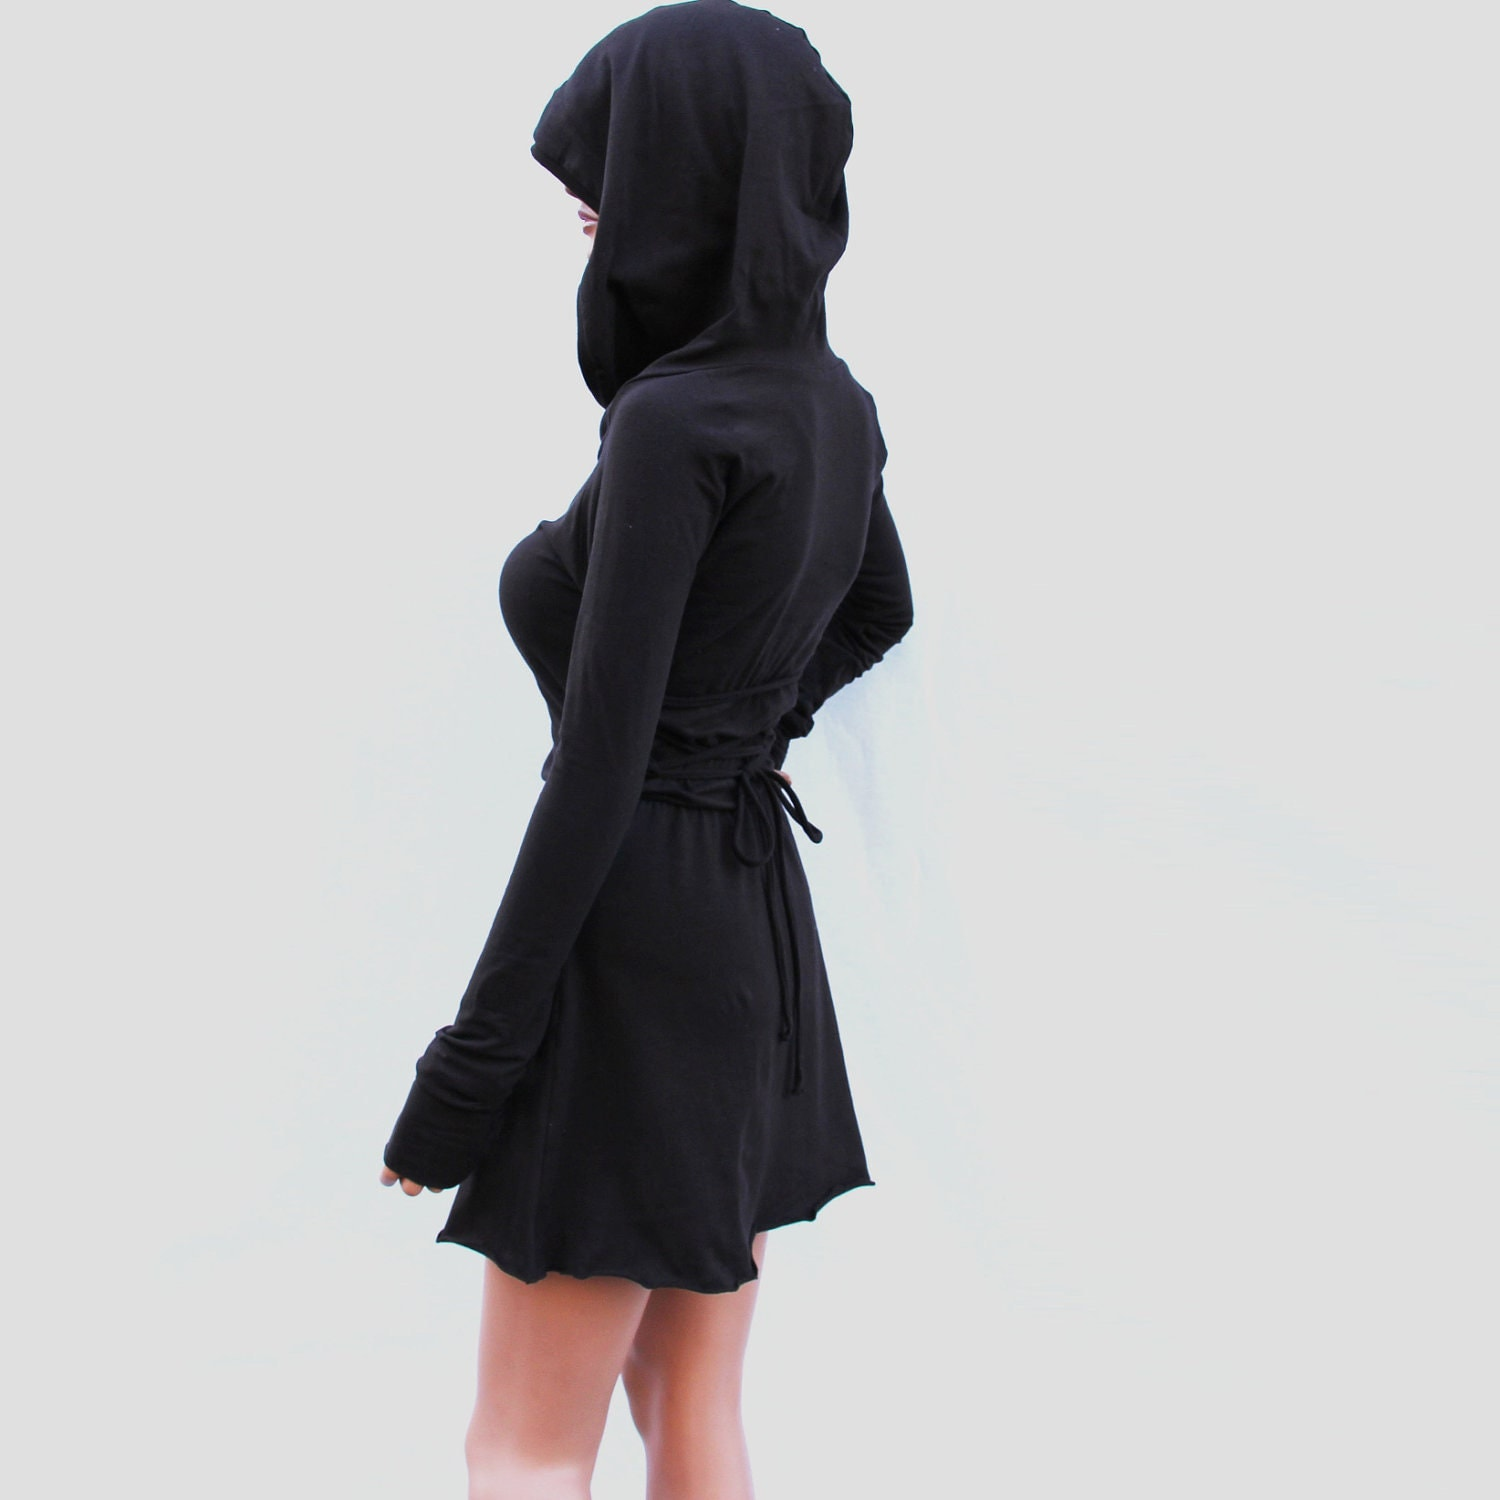 Dress / Hoodie Dress / Hooded Dress / Brown Hoodie Dress